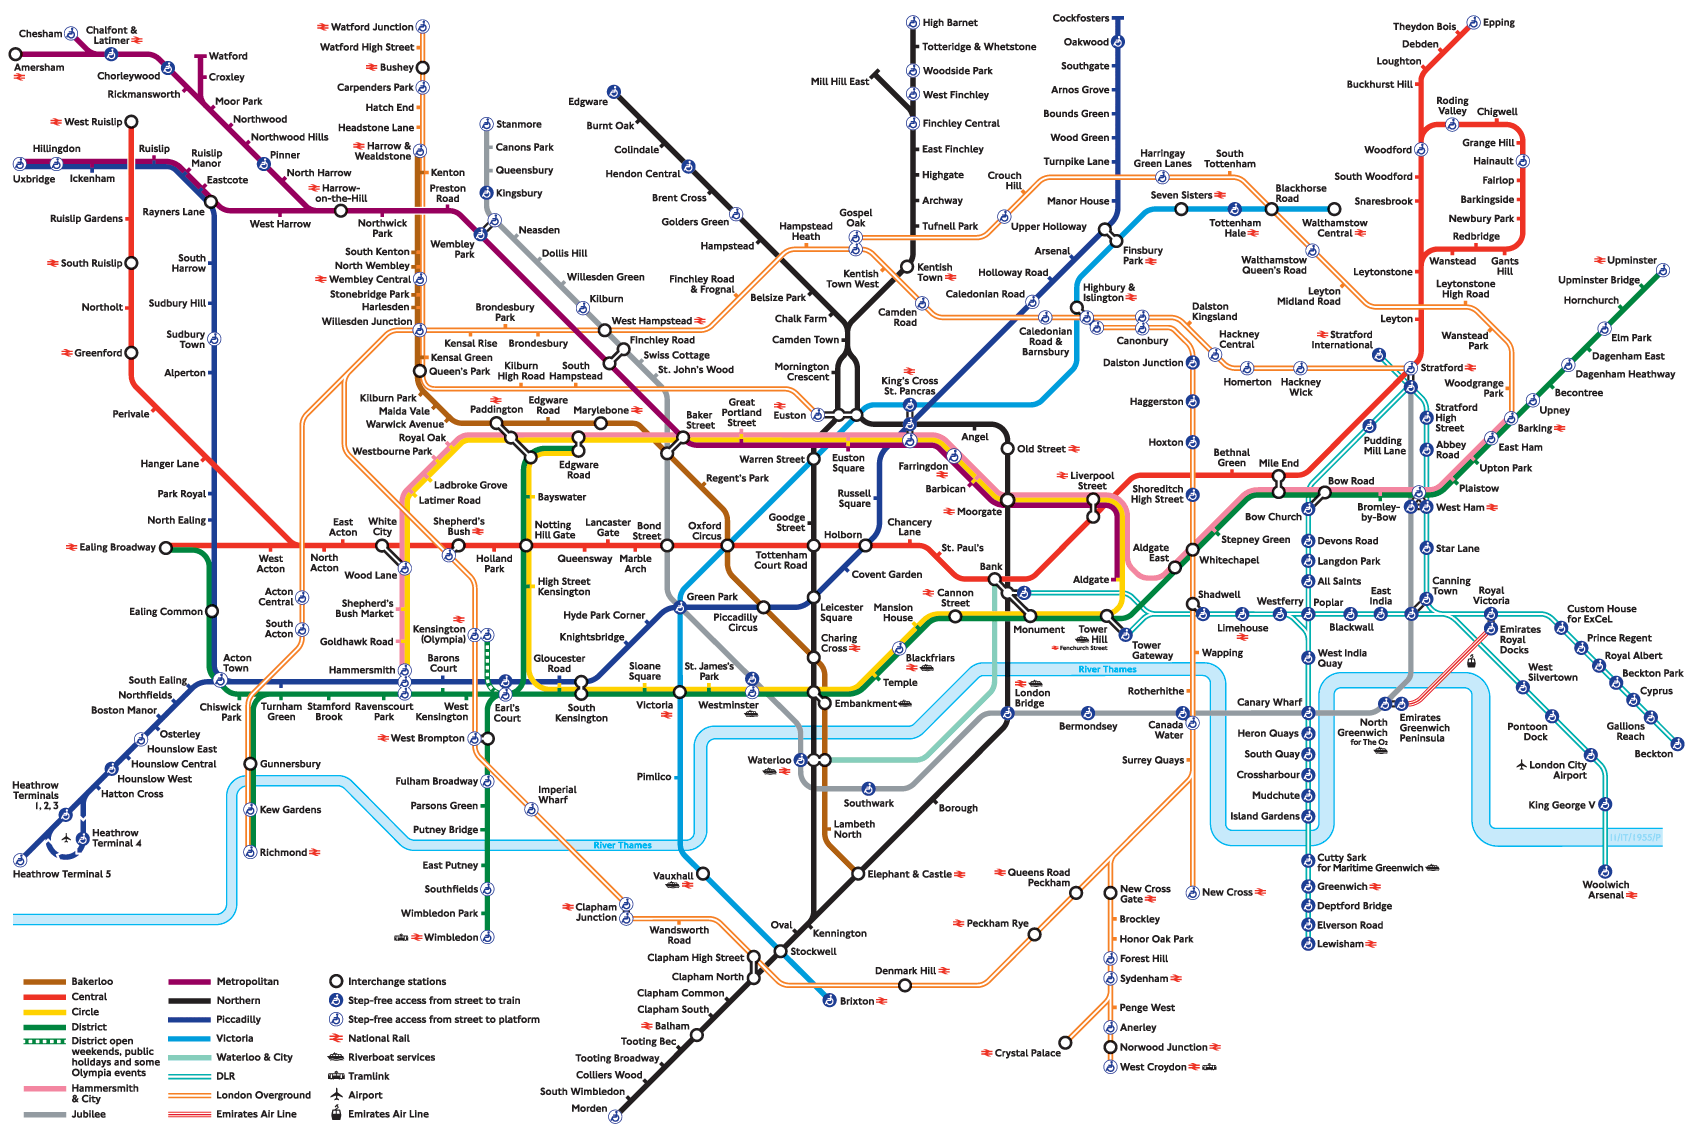 Map of The Tube